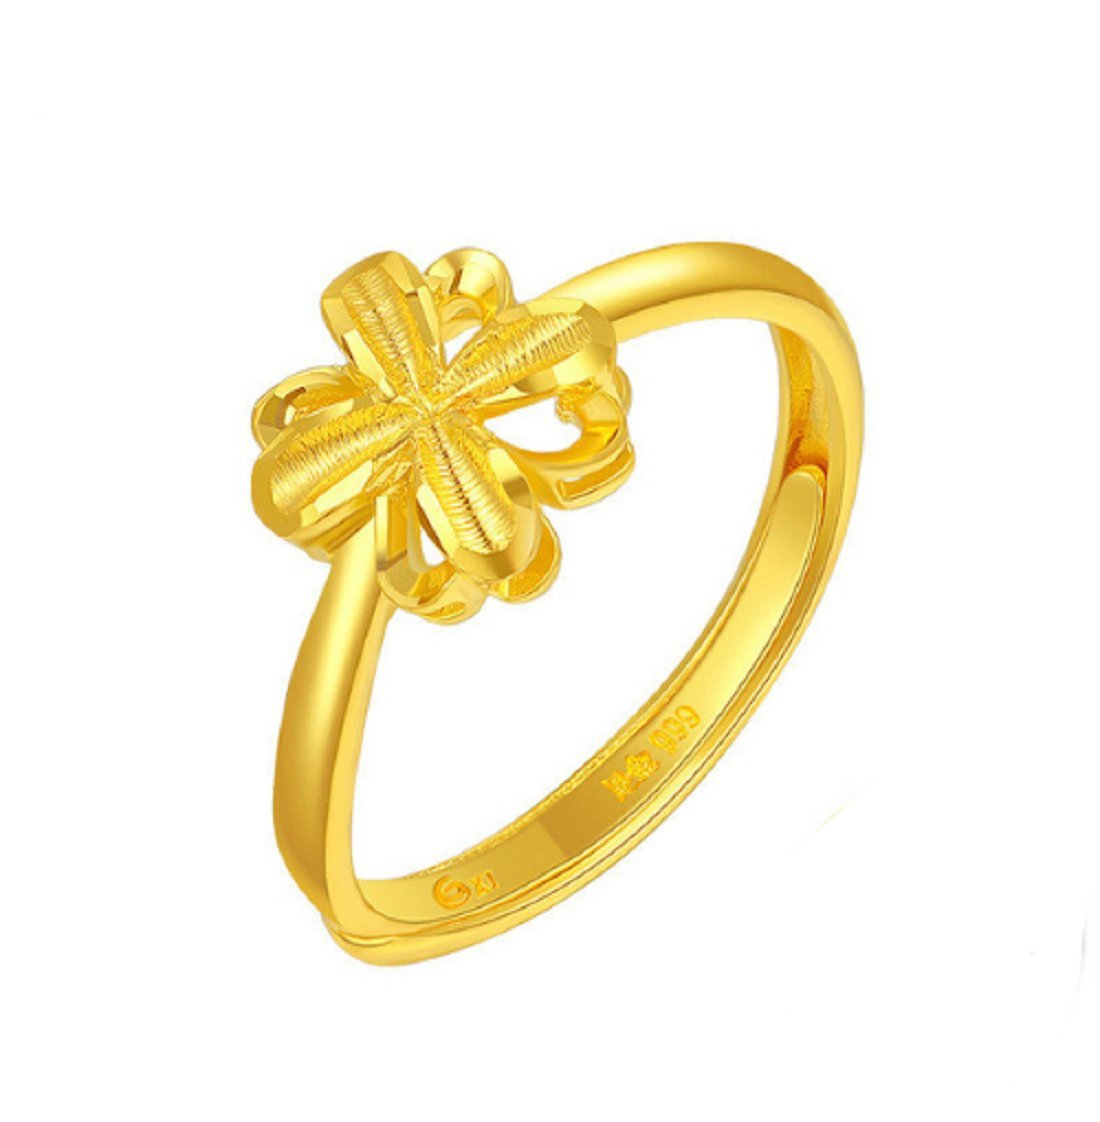 GOWE 24k Pure Gold Ring for Women Flower Shape Bright Petals Resizable Design Beautiful and Elegant 999Soild Gold Rings